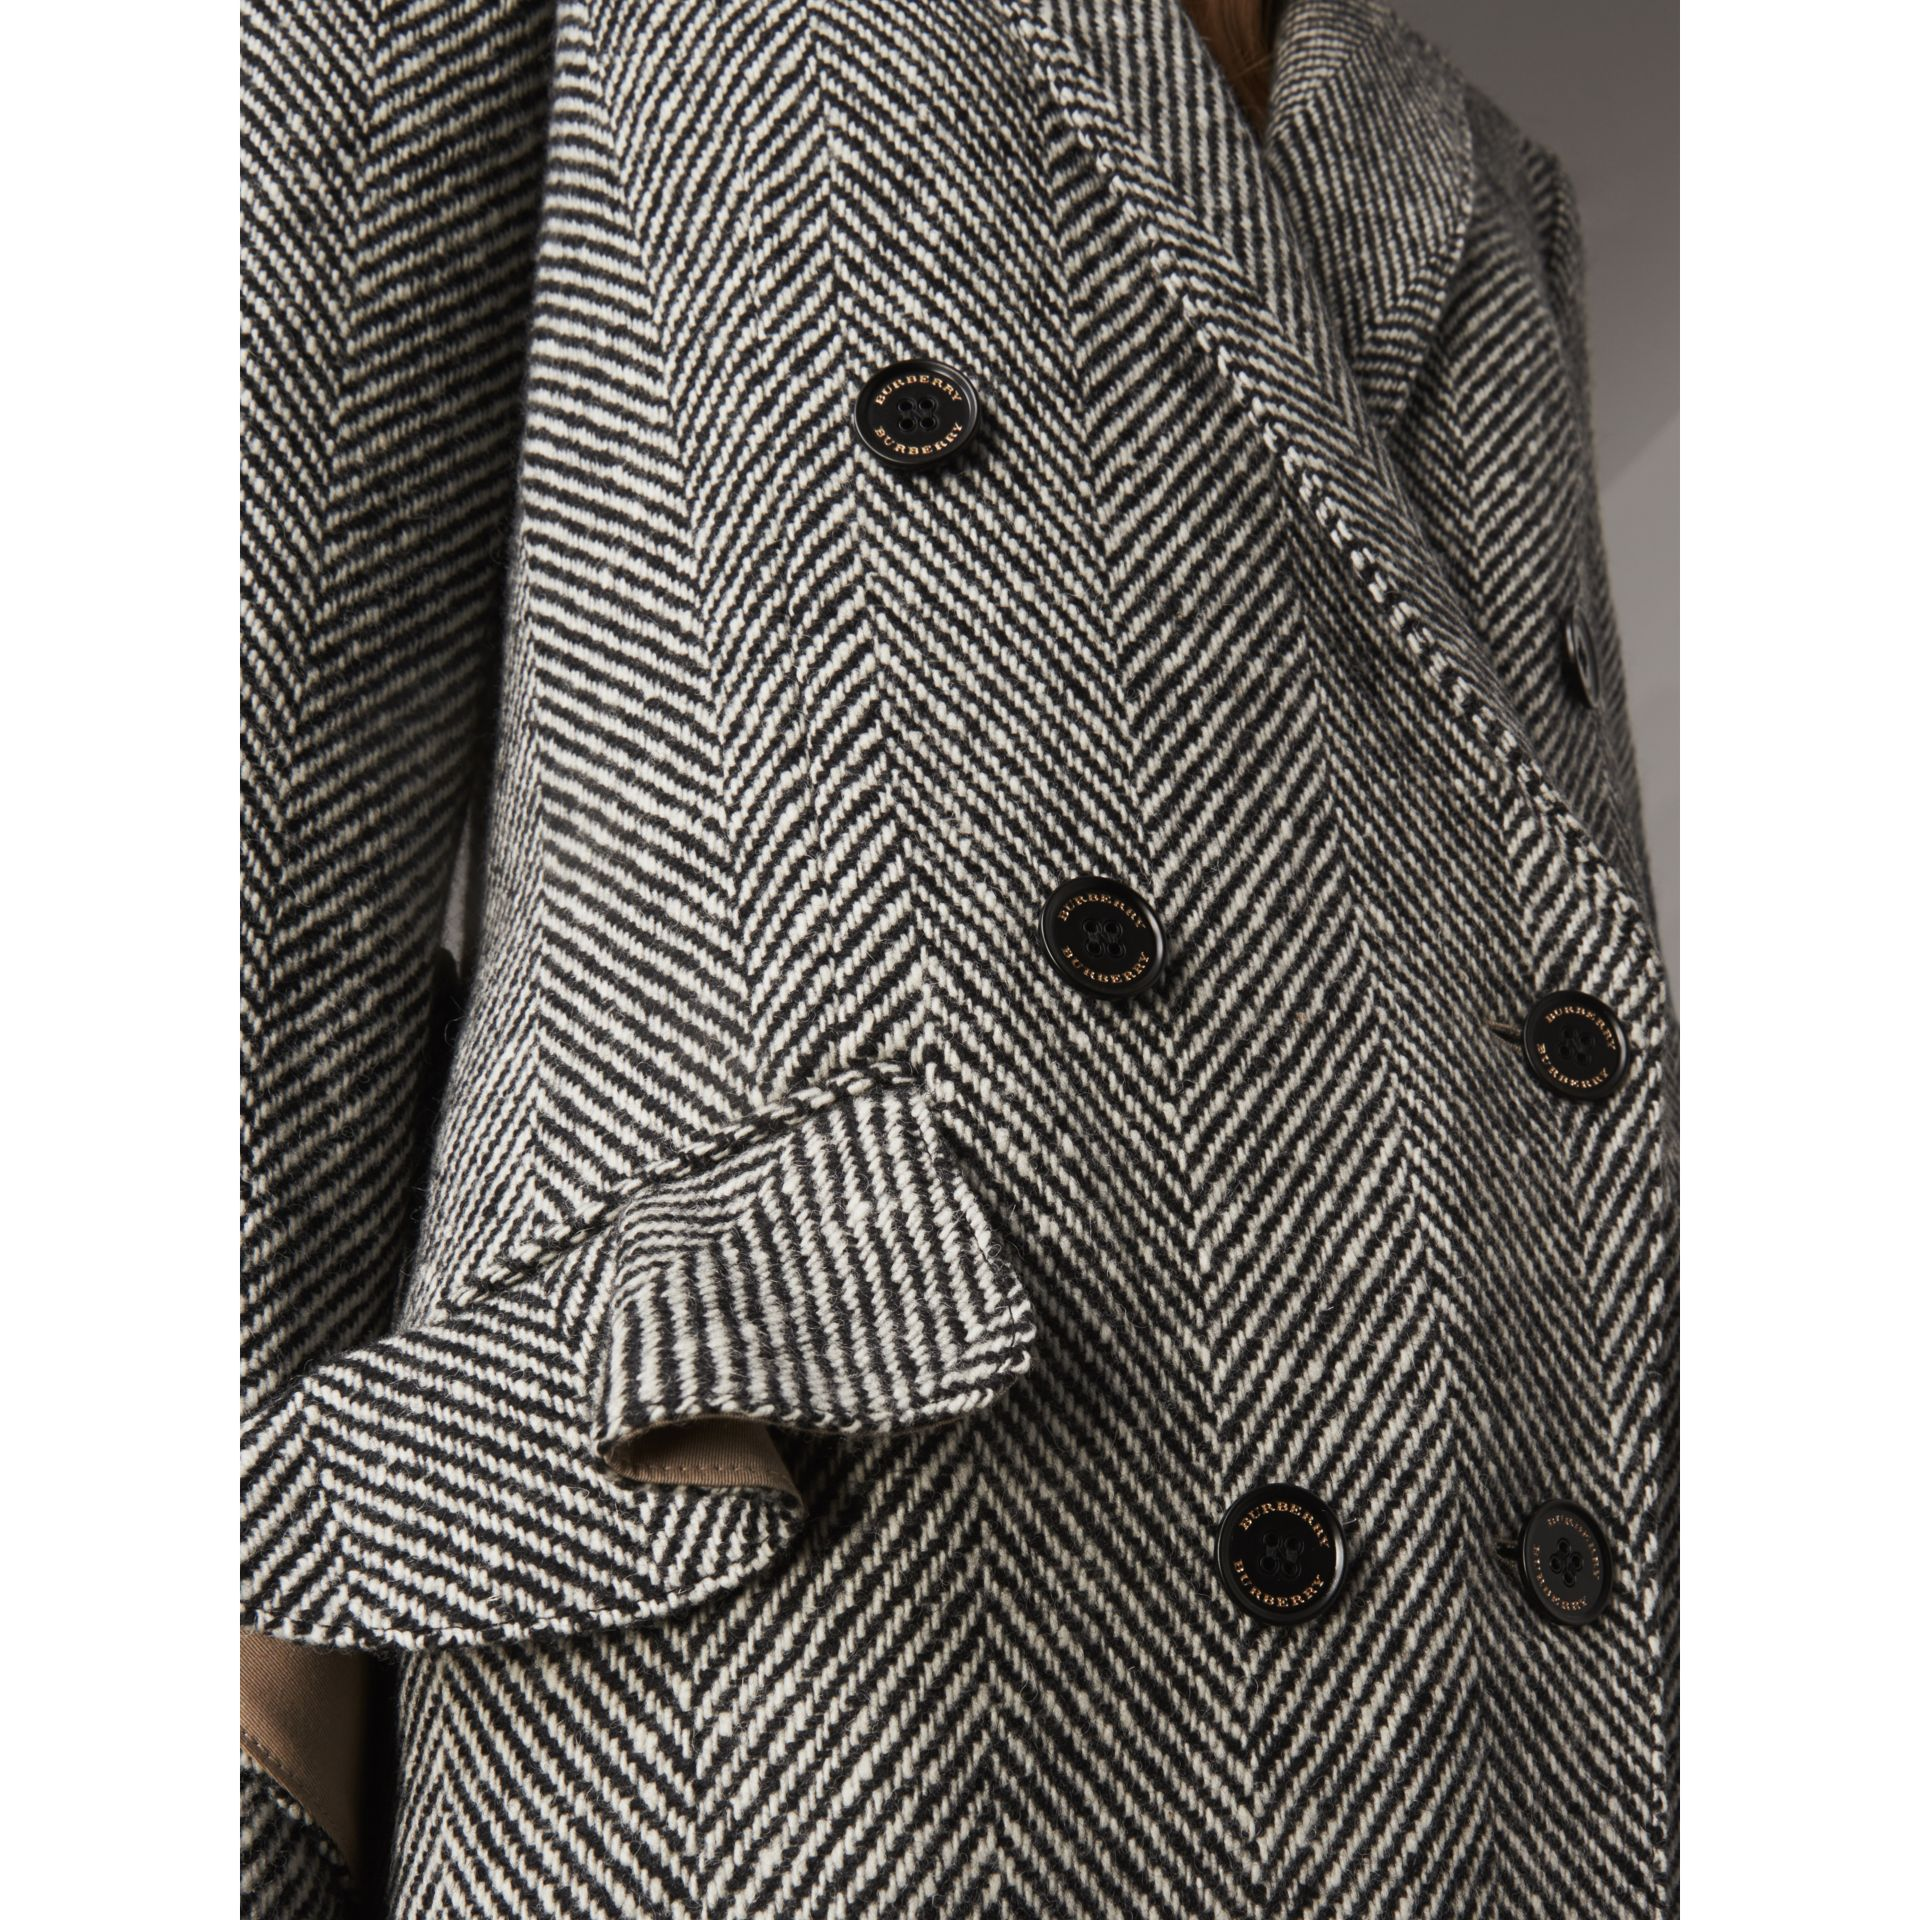 Donegal Herringbone Wool Tweed Tailored Coat in Black - Women | Burberry - gallery image 5